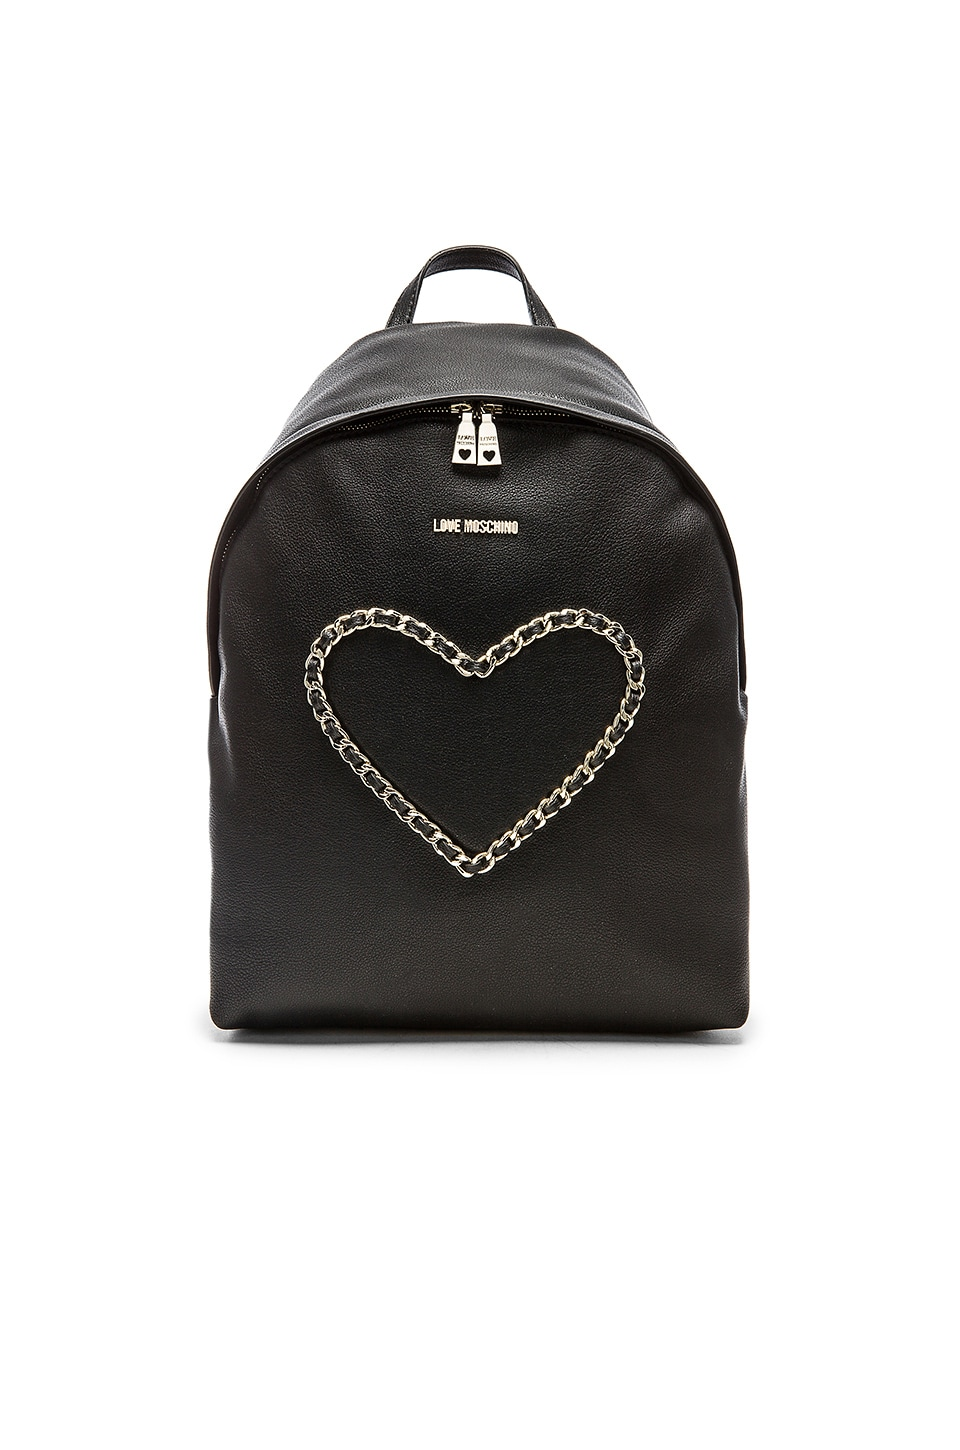 love moschino heart backpack in black revolve. Black Bedroom Furniture Sets. Home Design Ideas